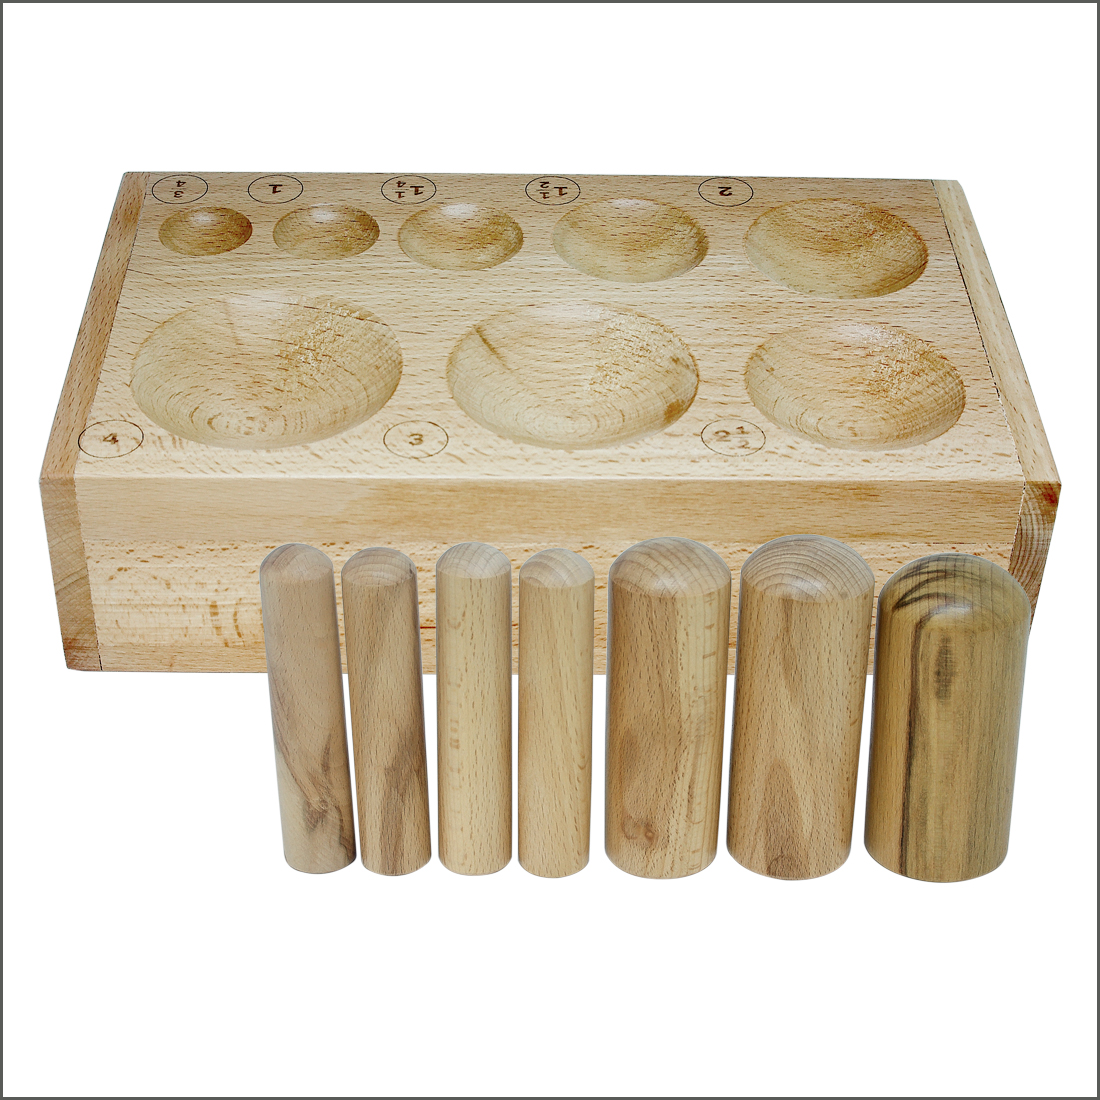 WOOD DAPPING BLOCK PUNCHES